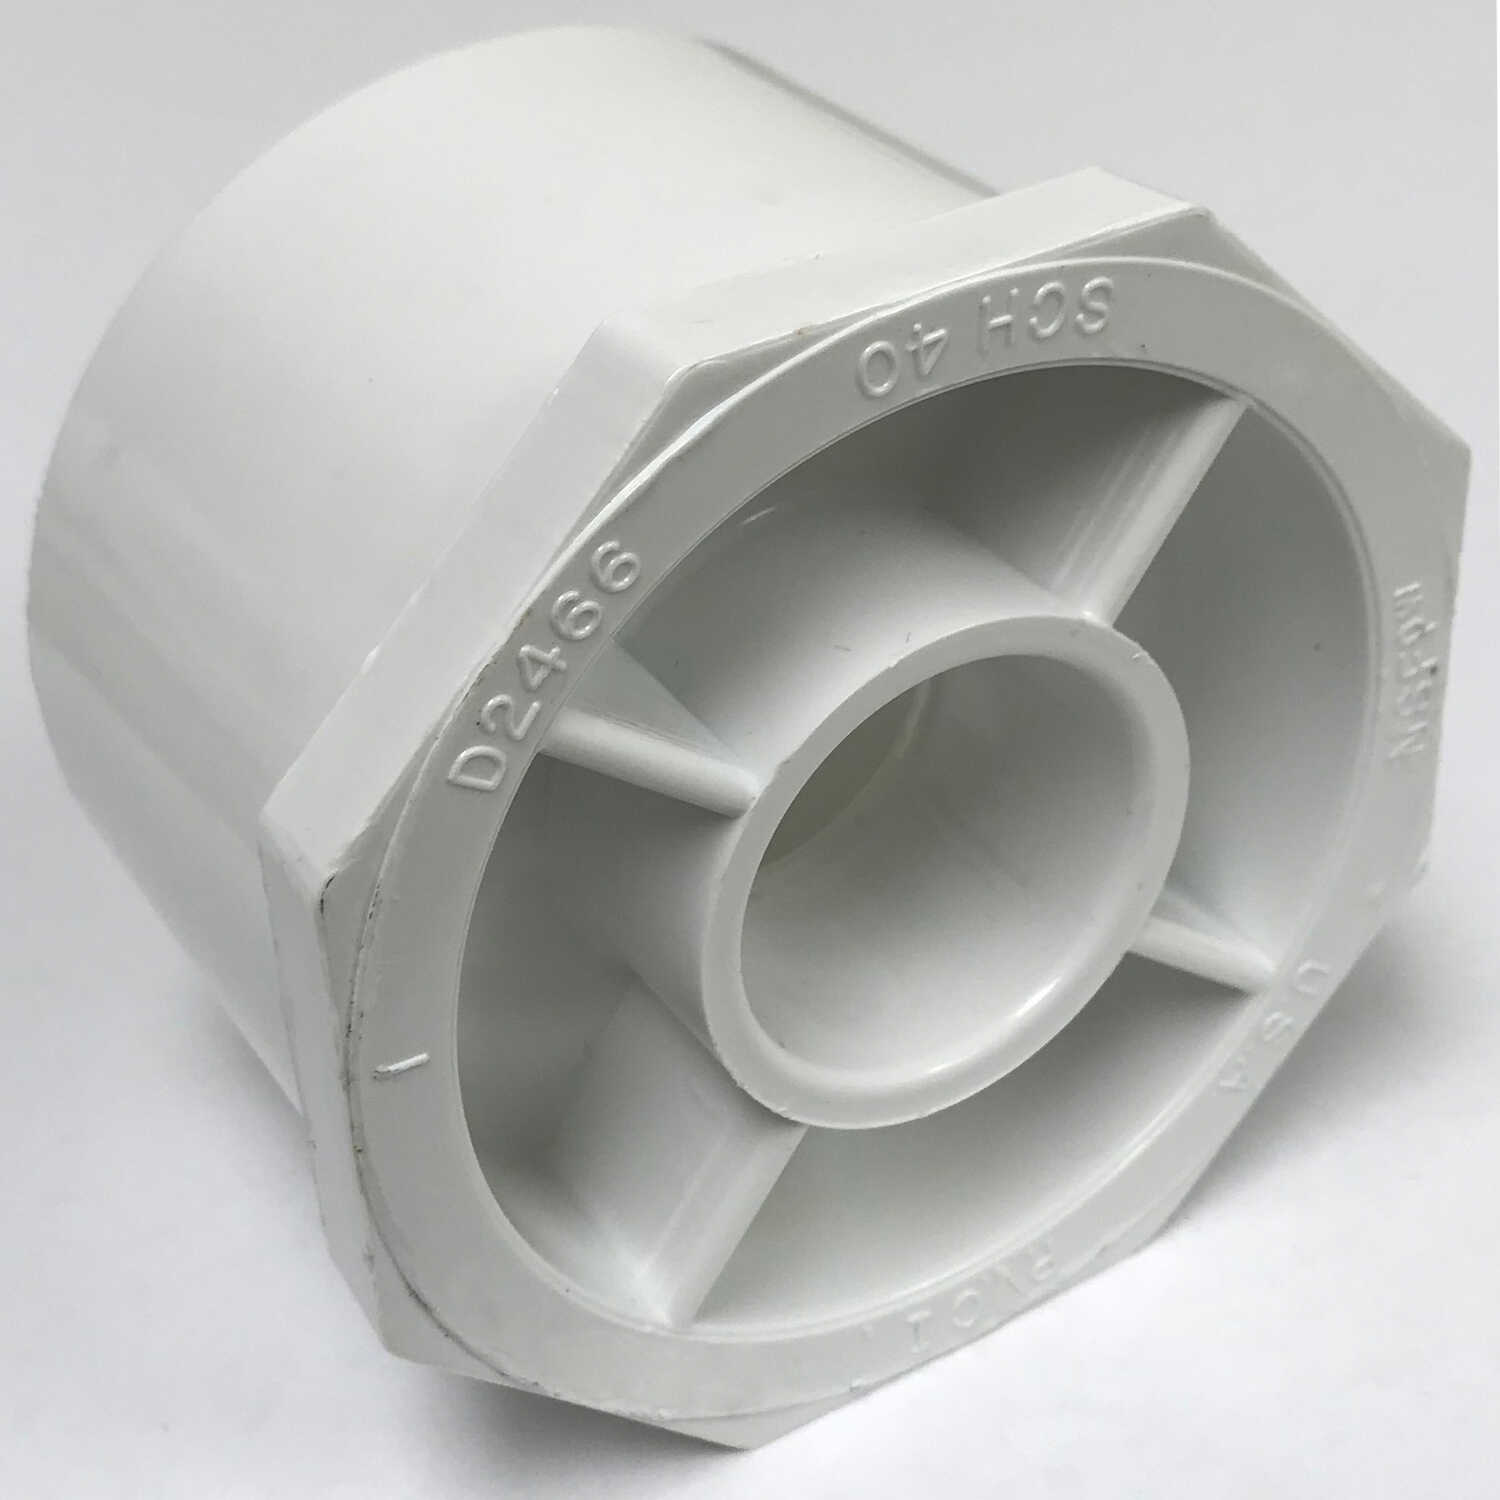 Charlotte Pipe  Schedule 40  2-1/2 in. Slip   x 1 in. Dia. Slip  PVC  Reducing Bushing